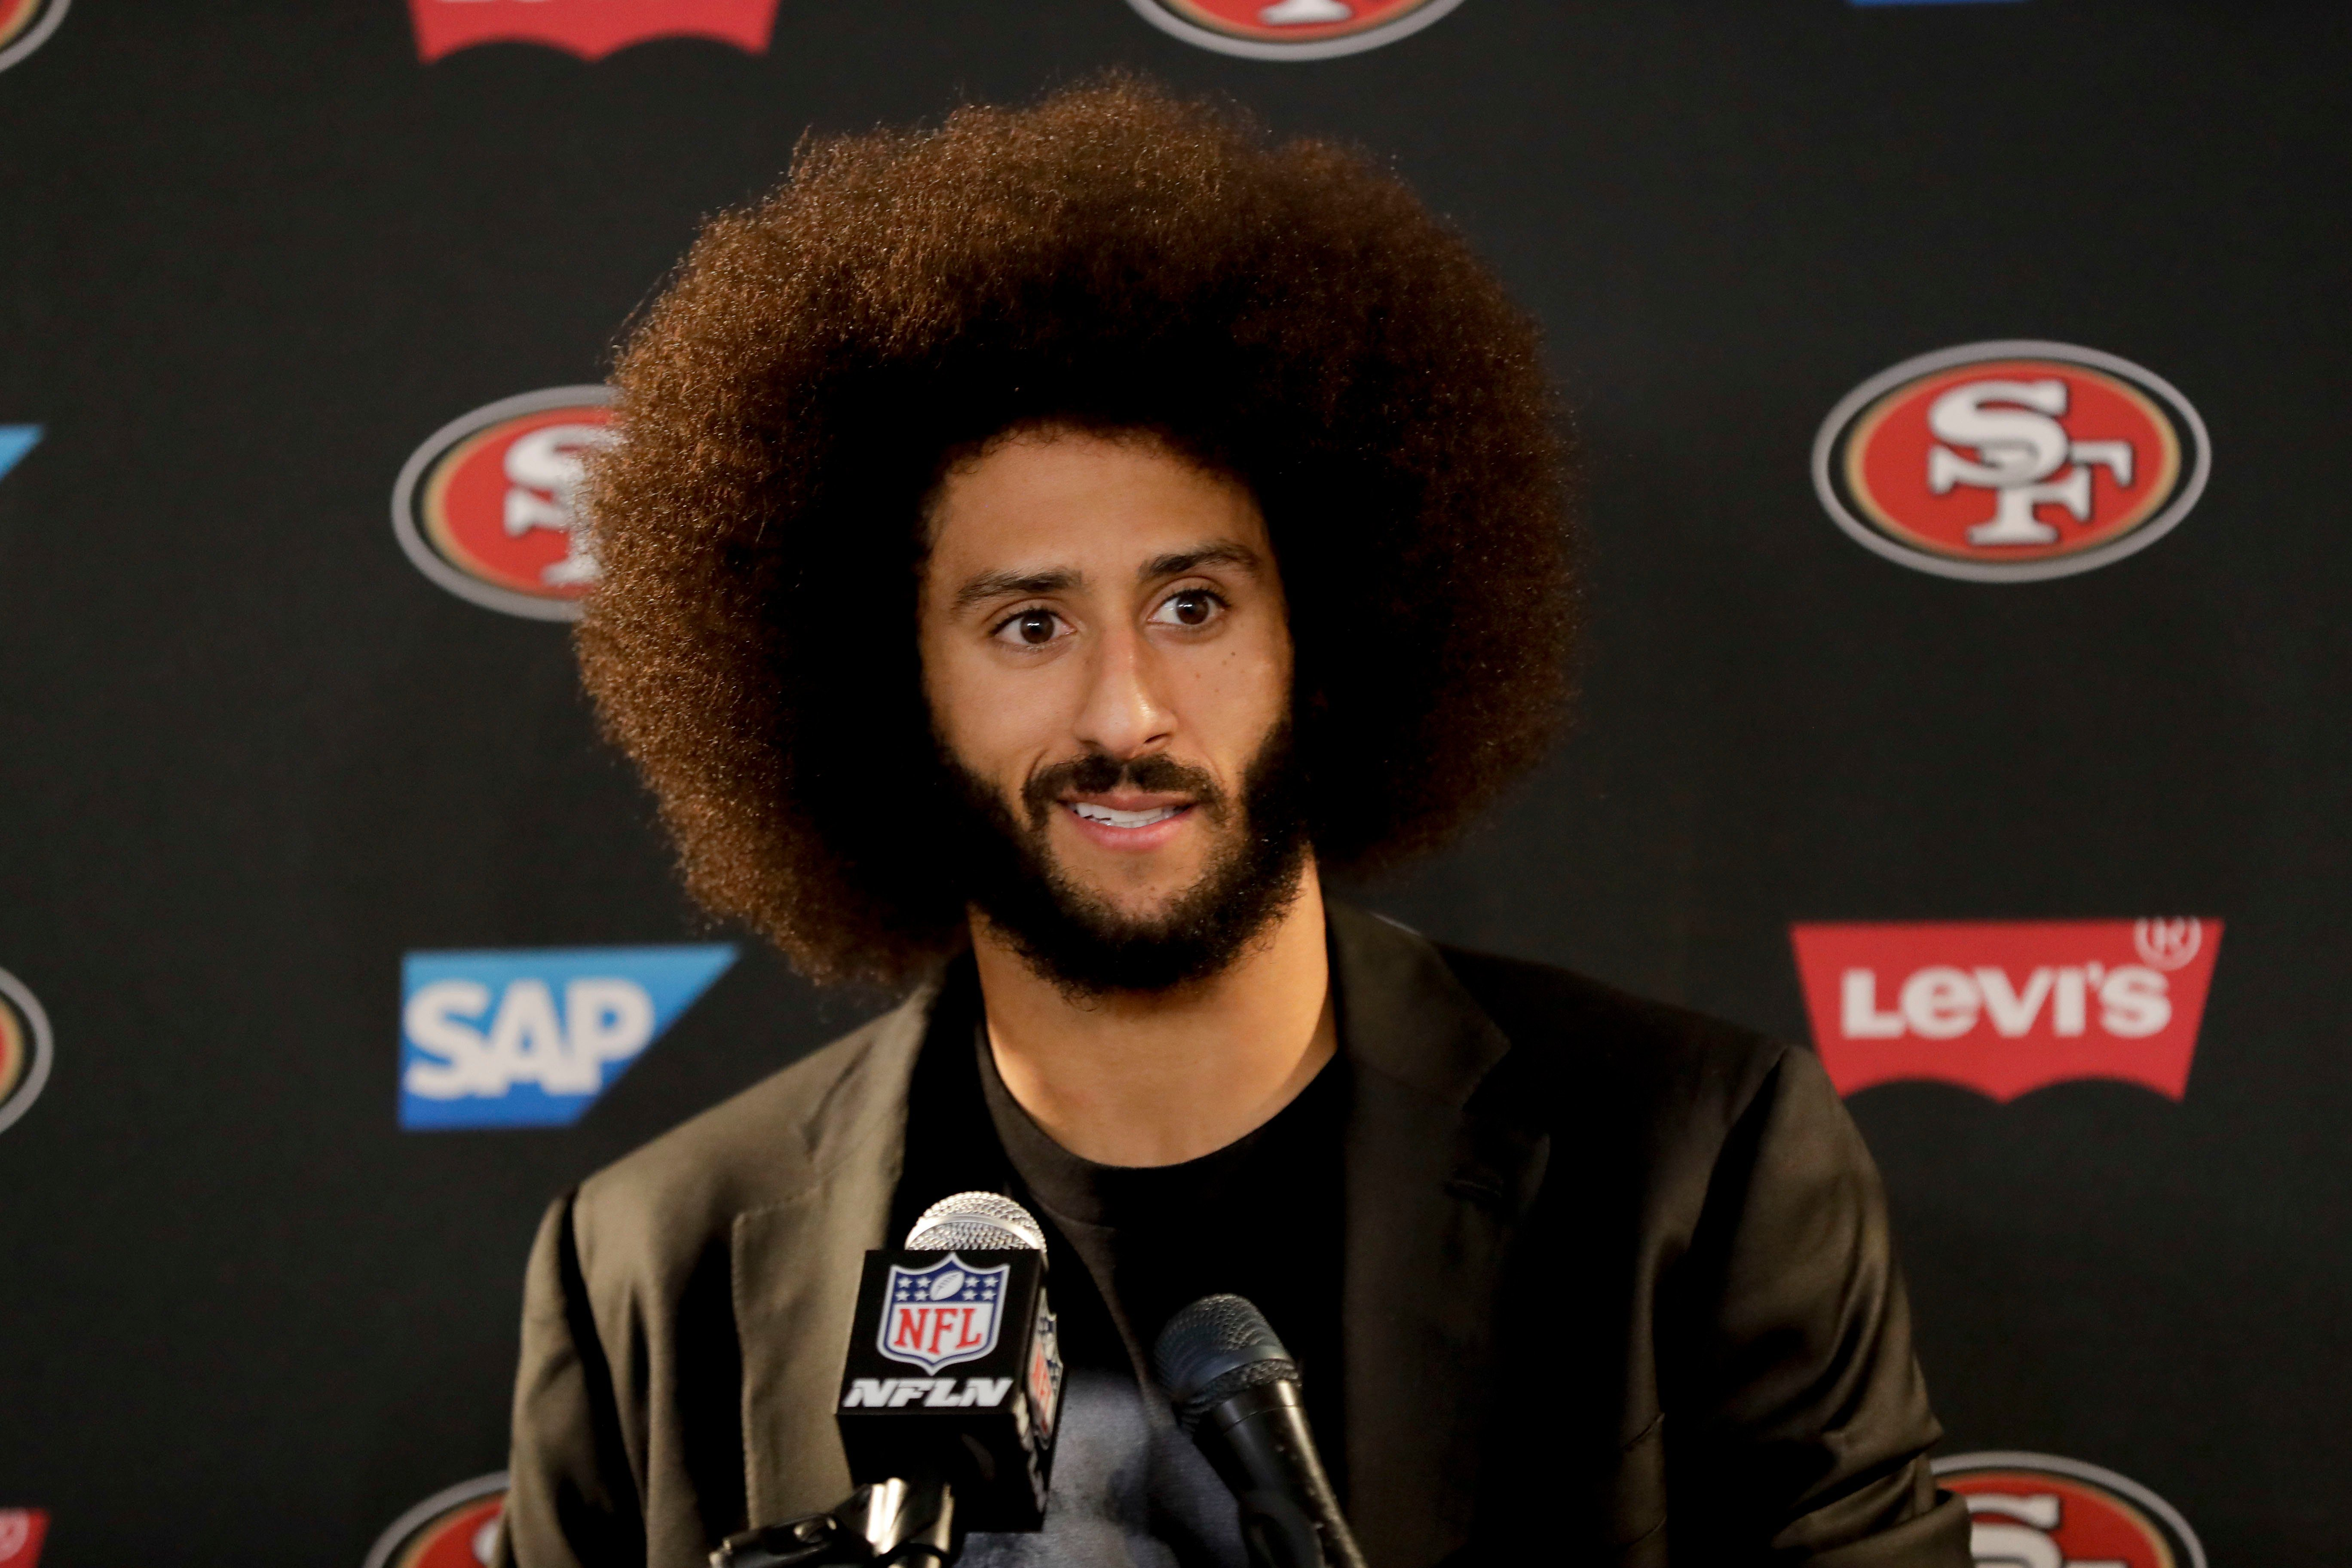 Mandatory Credit: Photo by AP/Shutterstock (9137518a) This Dec. 24, 2016 photo shows San Francisco 49ers quarterback Colin Kaepernick talking during a news conference after an NFL football game against the Los Angeles Rams. Kaepernick filed a grievance against the NFL on alleging that he remains unsigned as a result of collusion by owners following his protests during the national anthem Kaepernick-Grievance Football, Los Angeles, USA - 25 Dec 2016